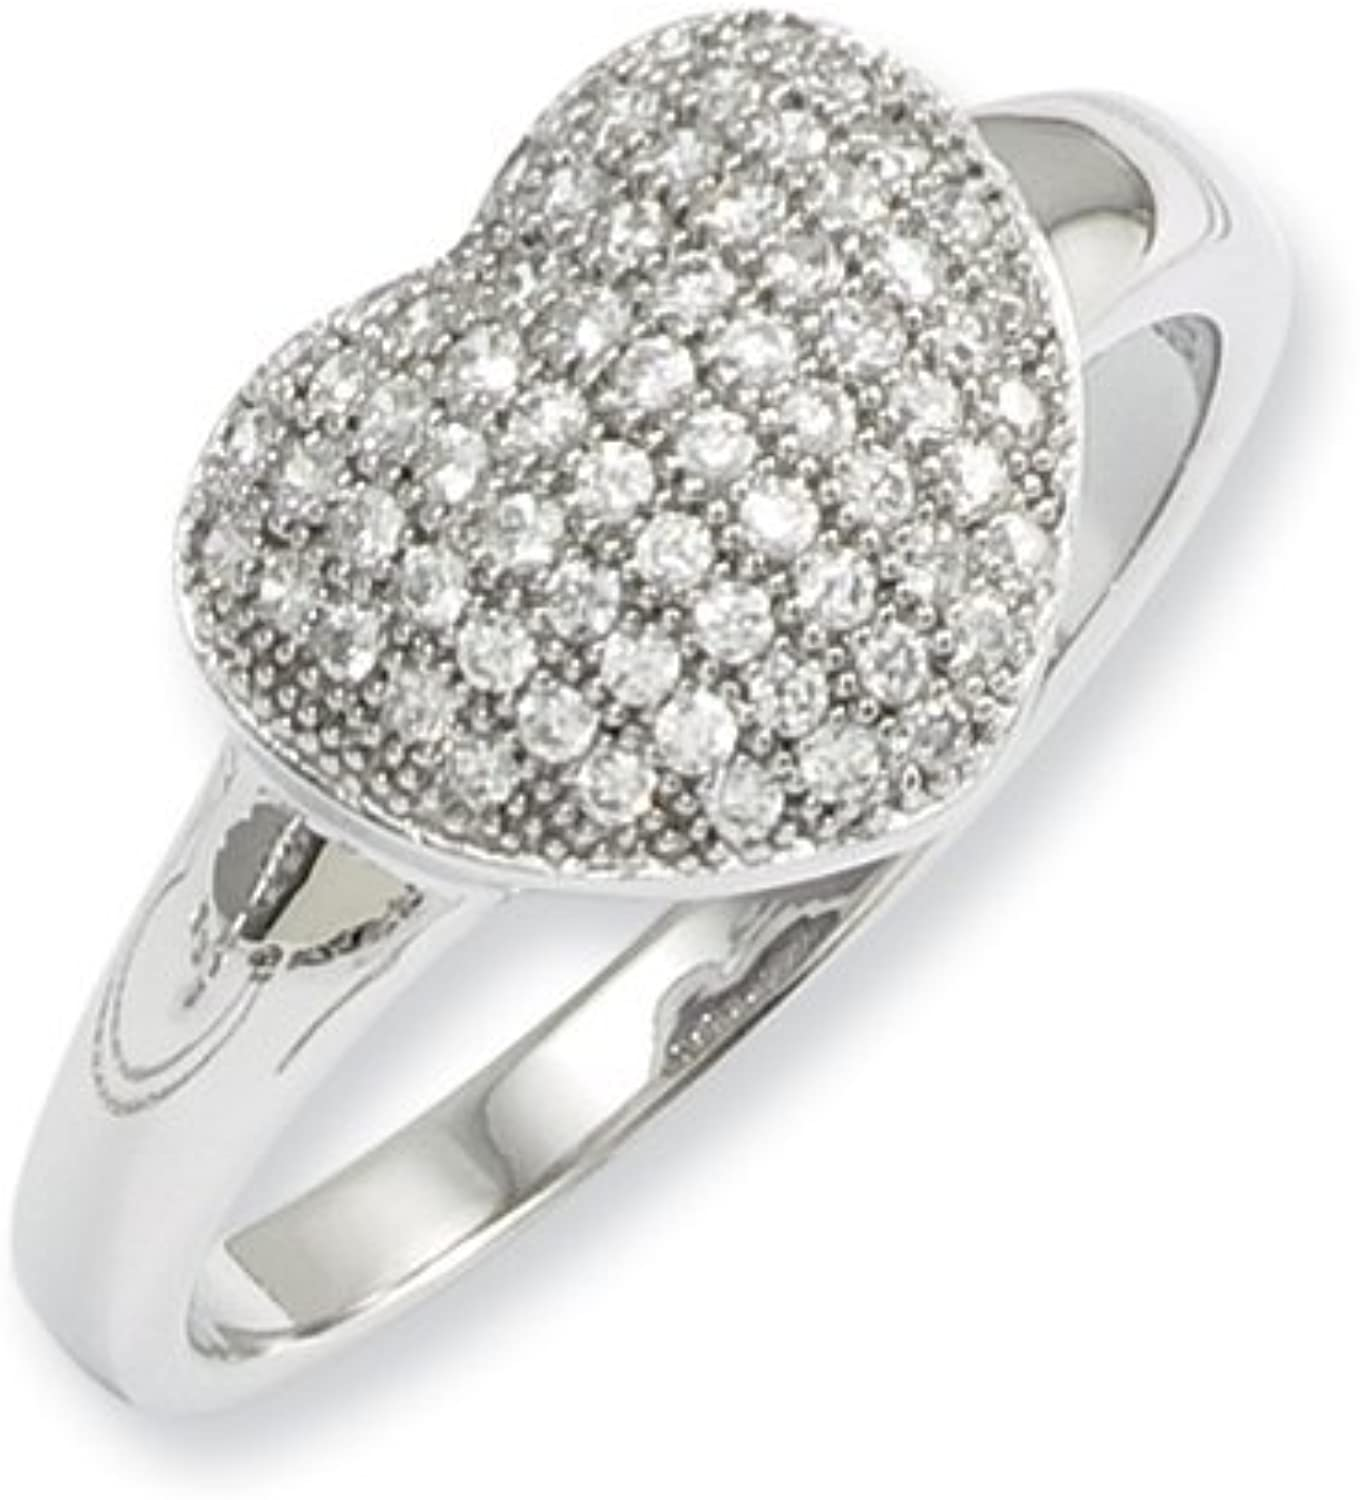 Brilliant Embers Sterling Silver & CZ Brilliant Embers Polished Heart Ring